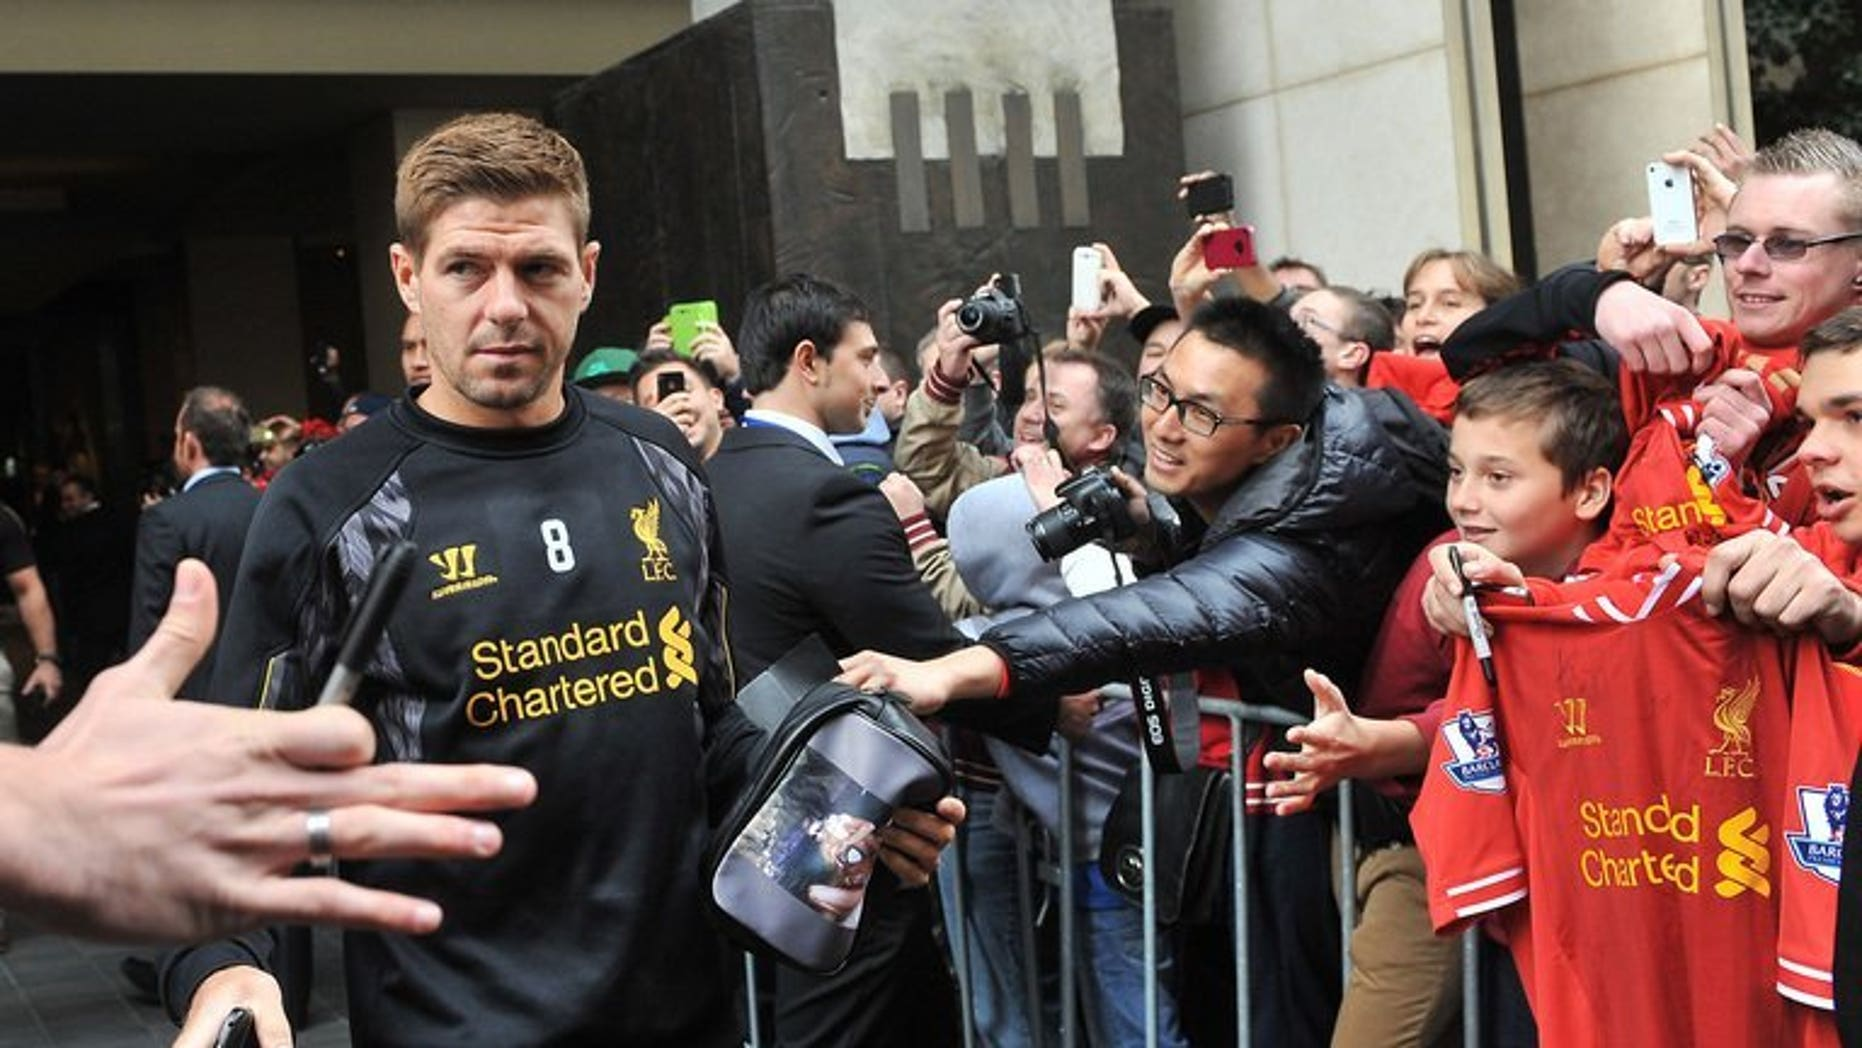 Liverpool midfielder Steven Gerrard acknowledges fans as the team leaves their hotel for a training session in Melbourne on July 22, 2013. Gerrard said Wednesday he believes success is just around the corner for the Merseyside club, and urged the team's owners to keep backing manager Brendan Rodgers.